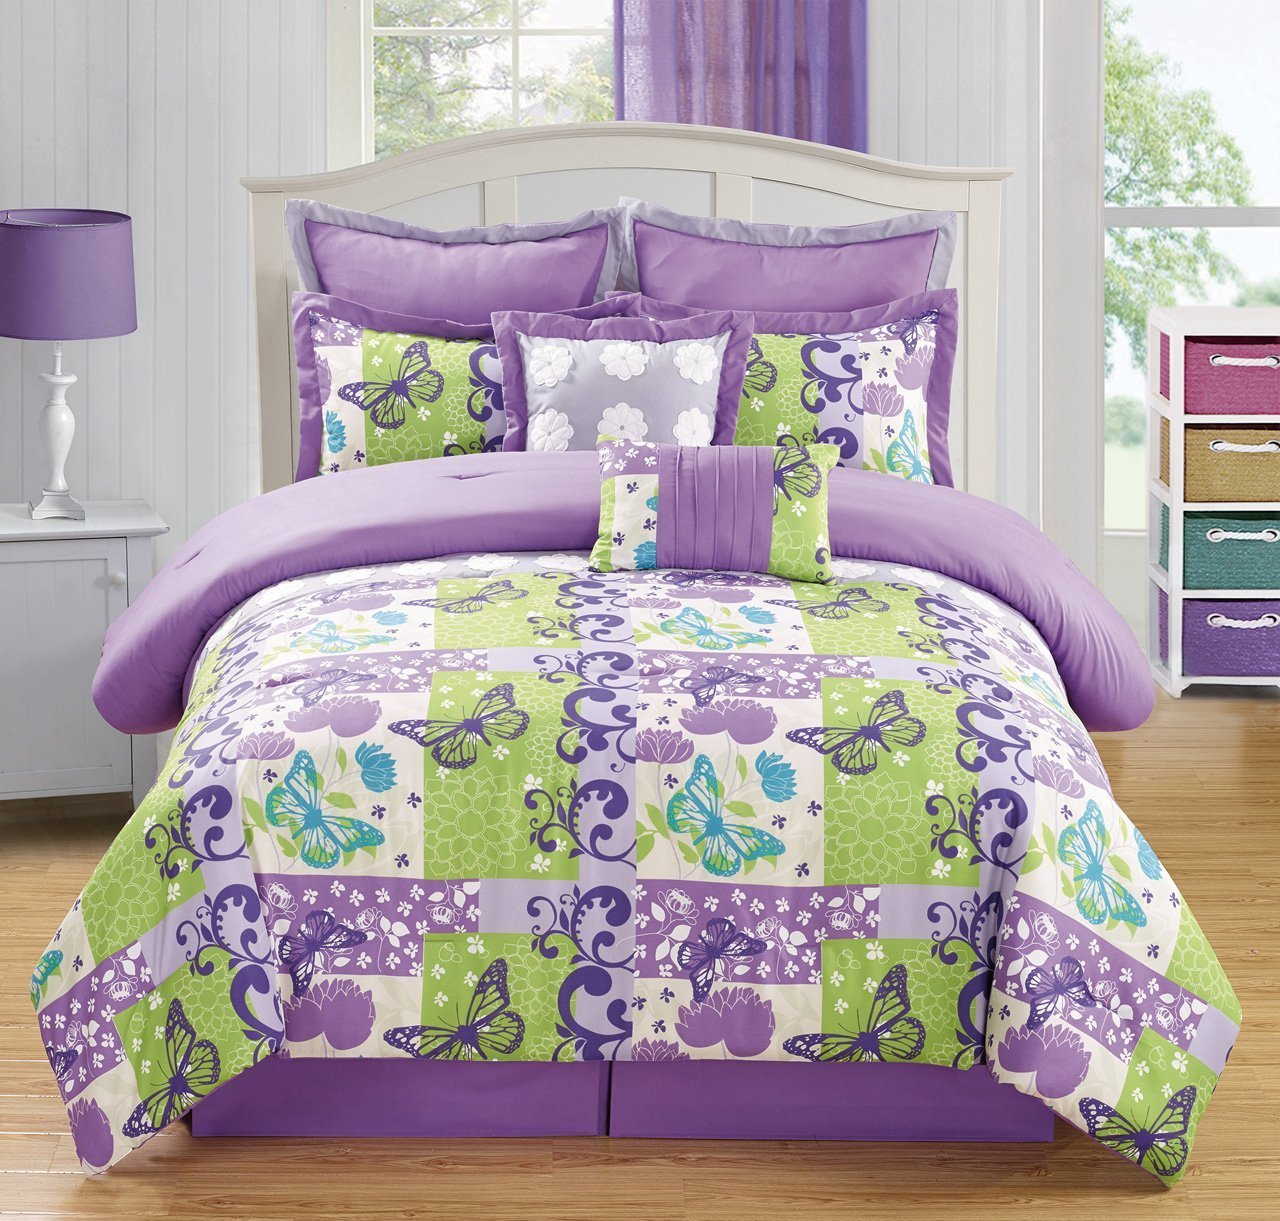 Green and Purple Bedding Sets